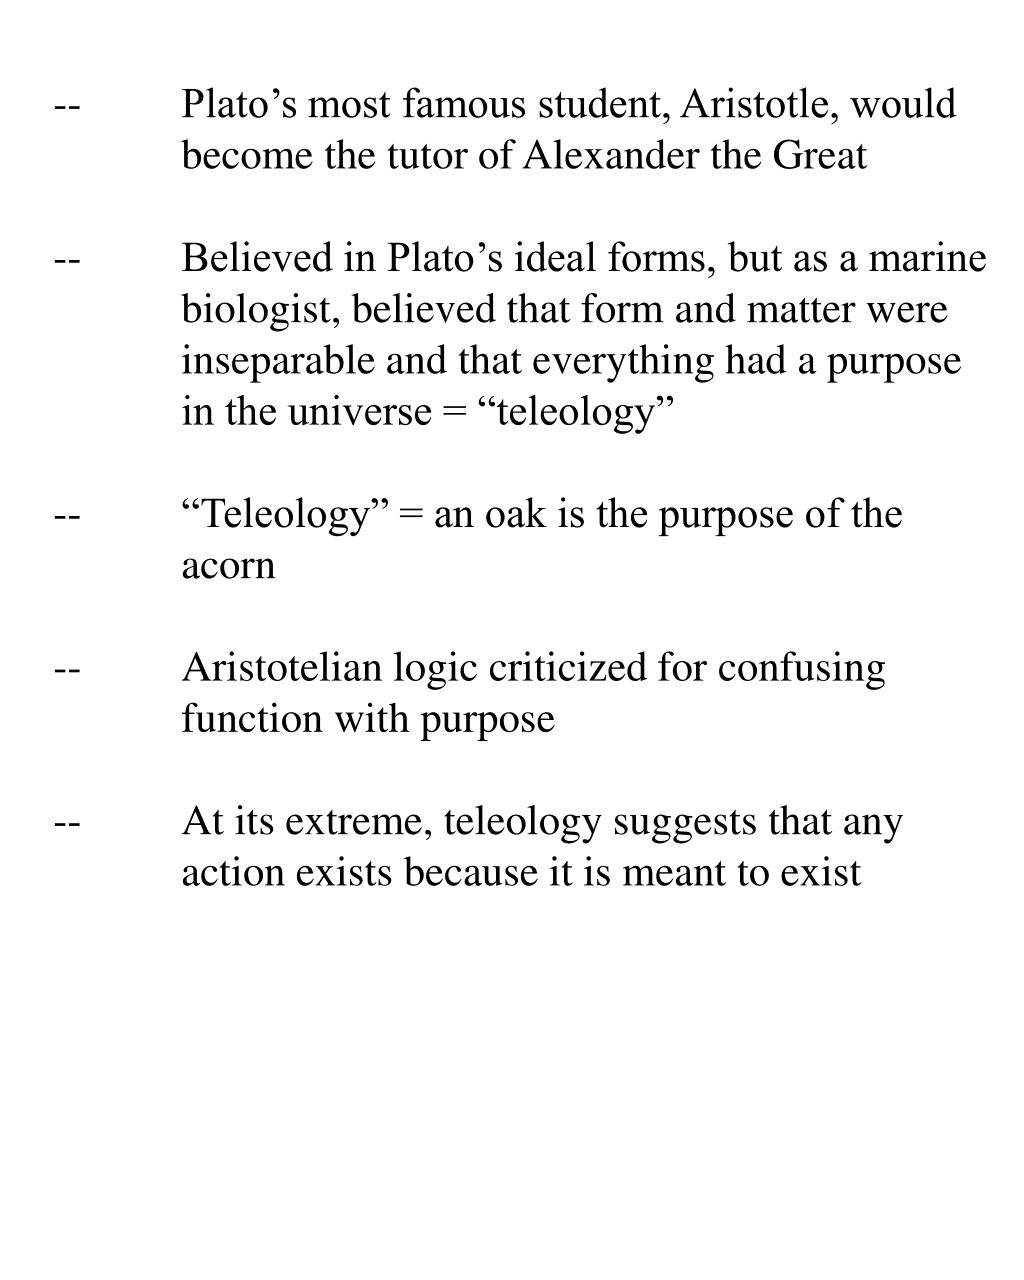 --Plato's most famous student, Aristotle, would